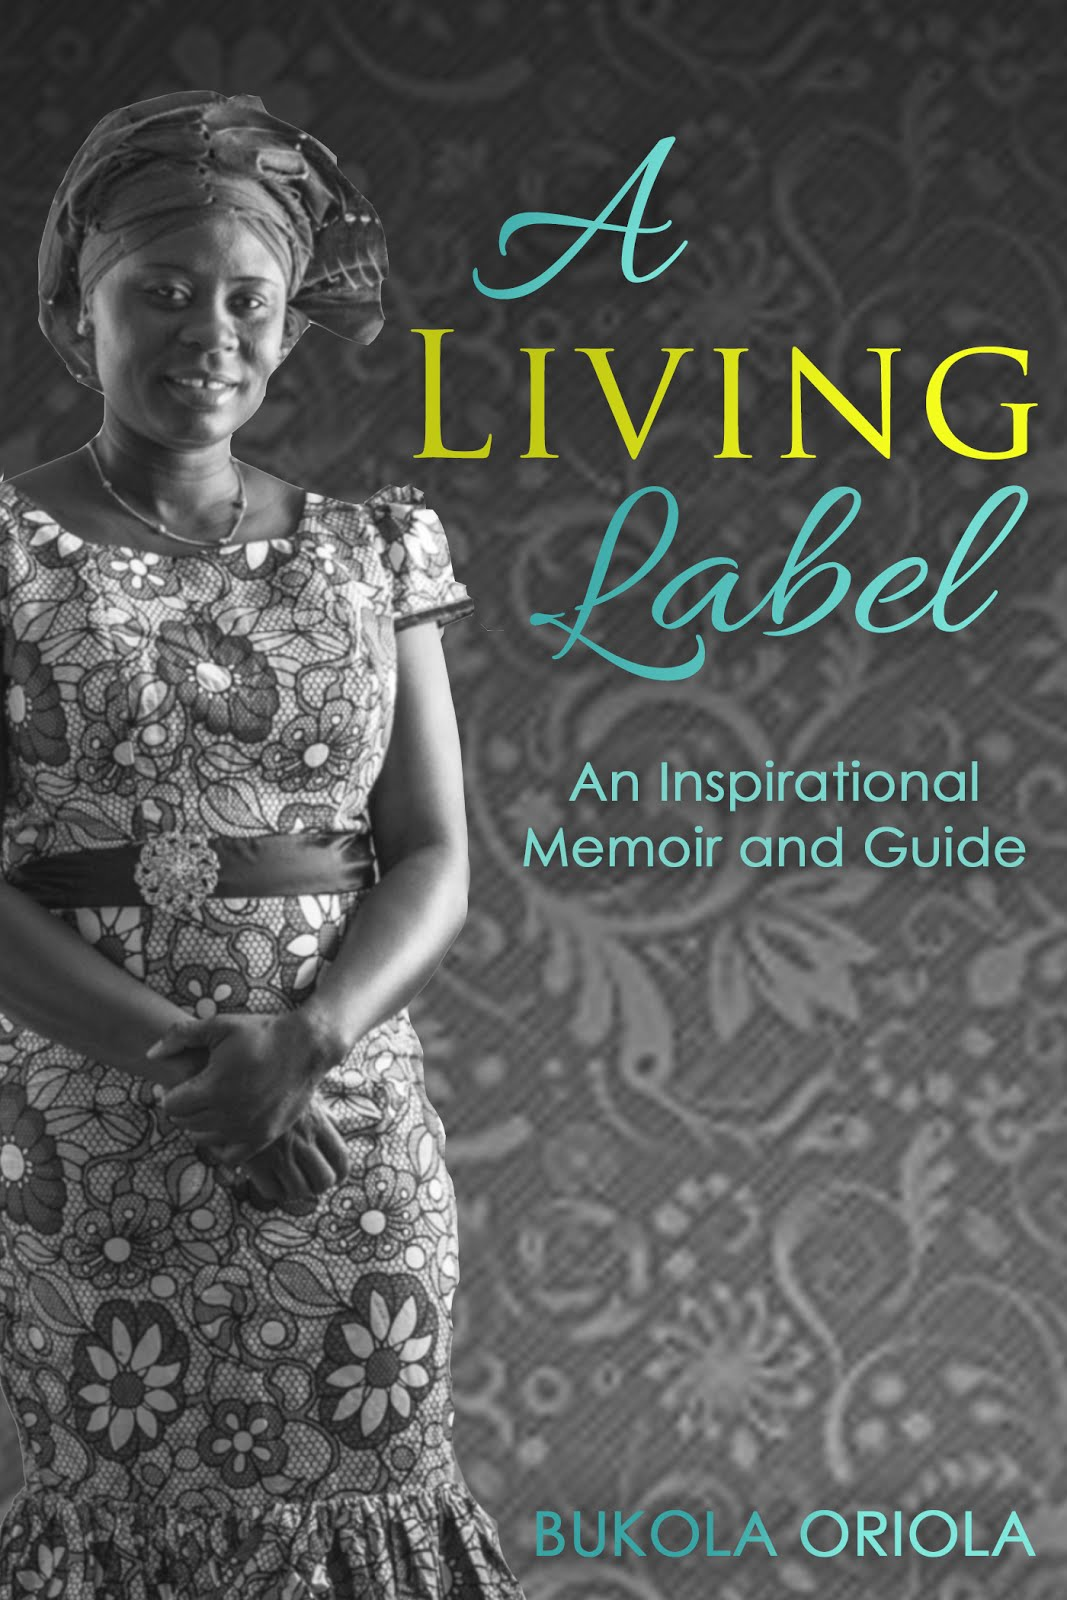 Click on image to get Bukola'sBook